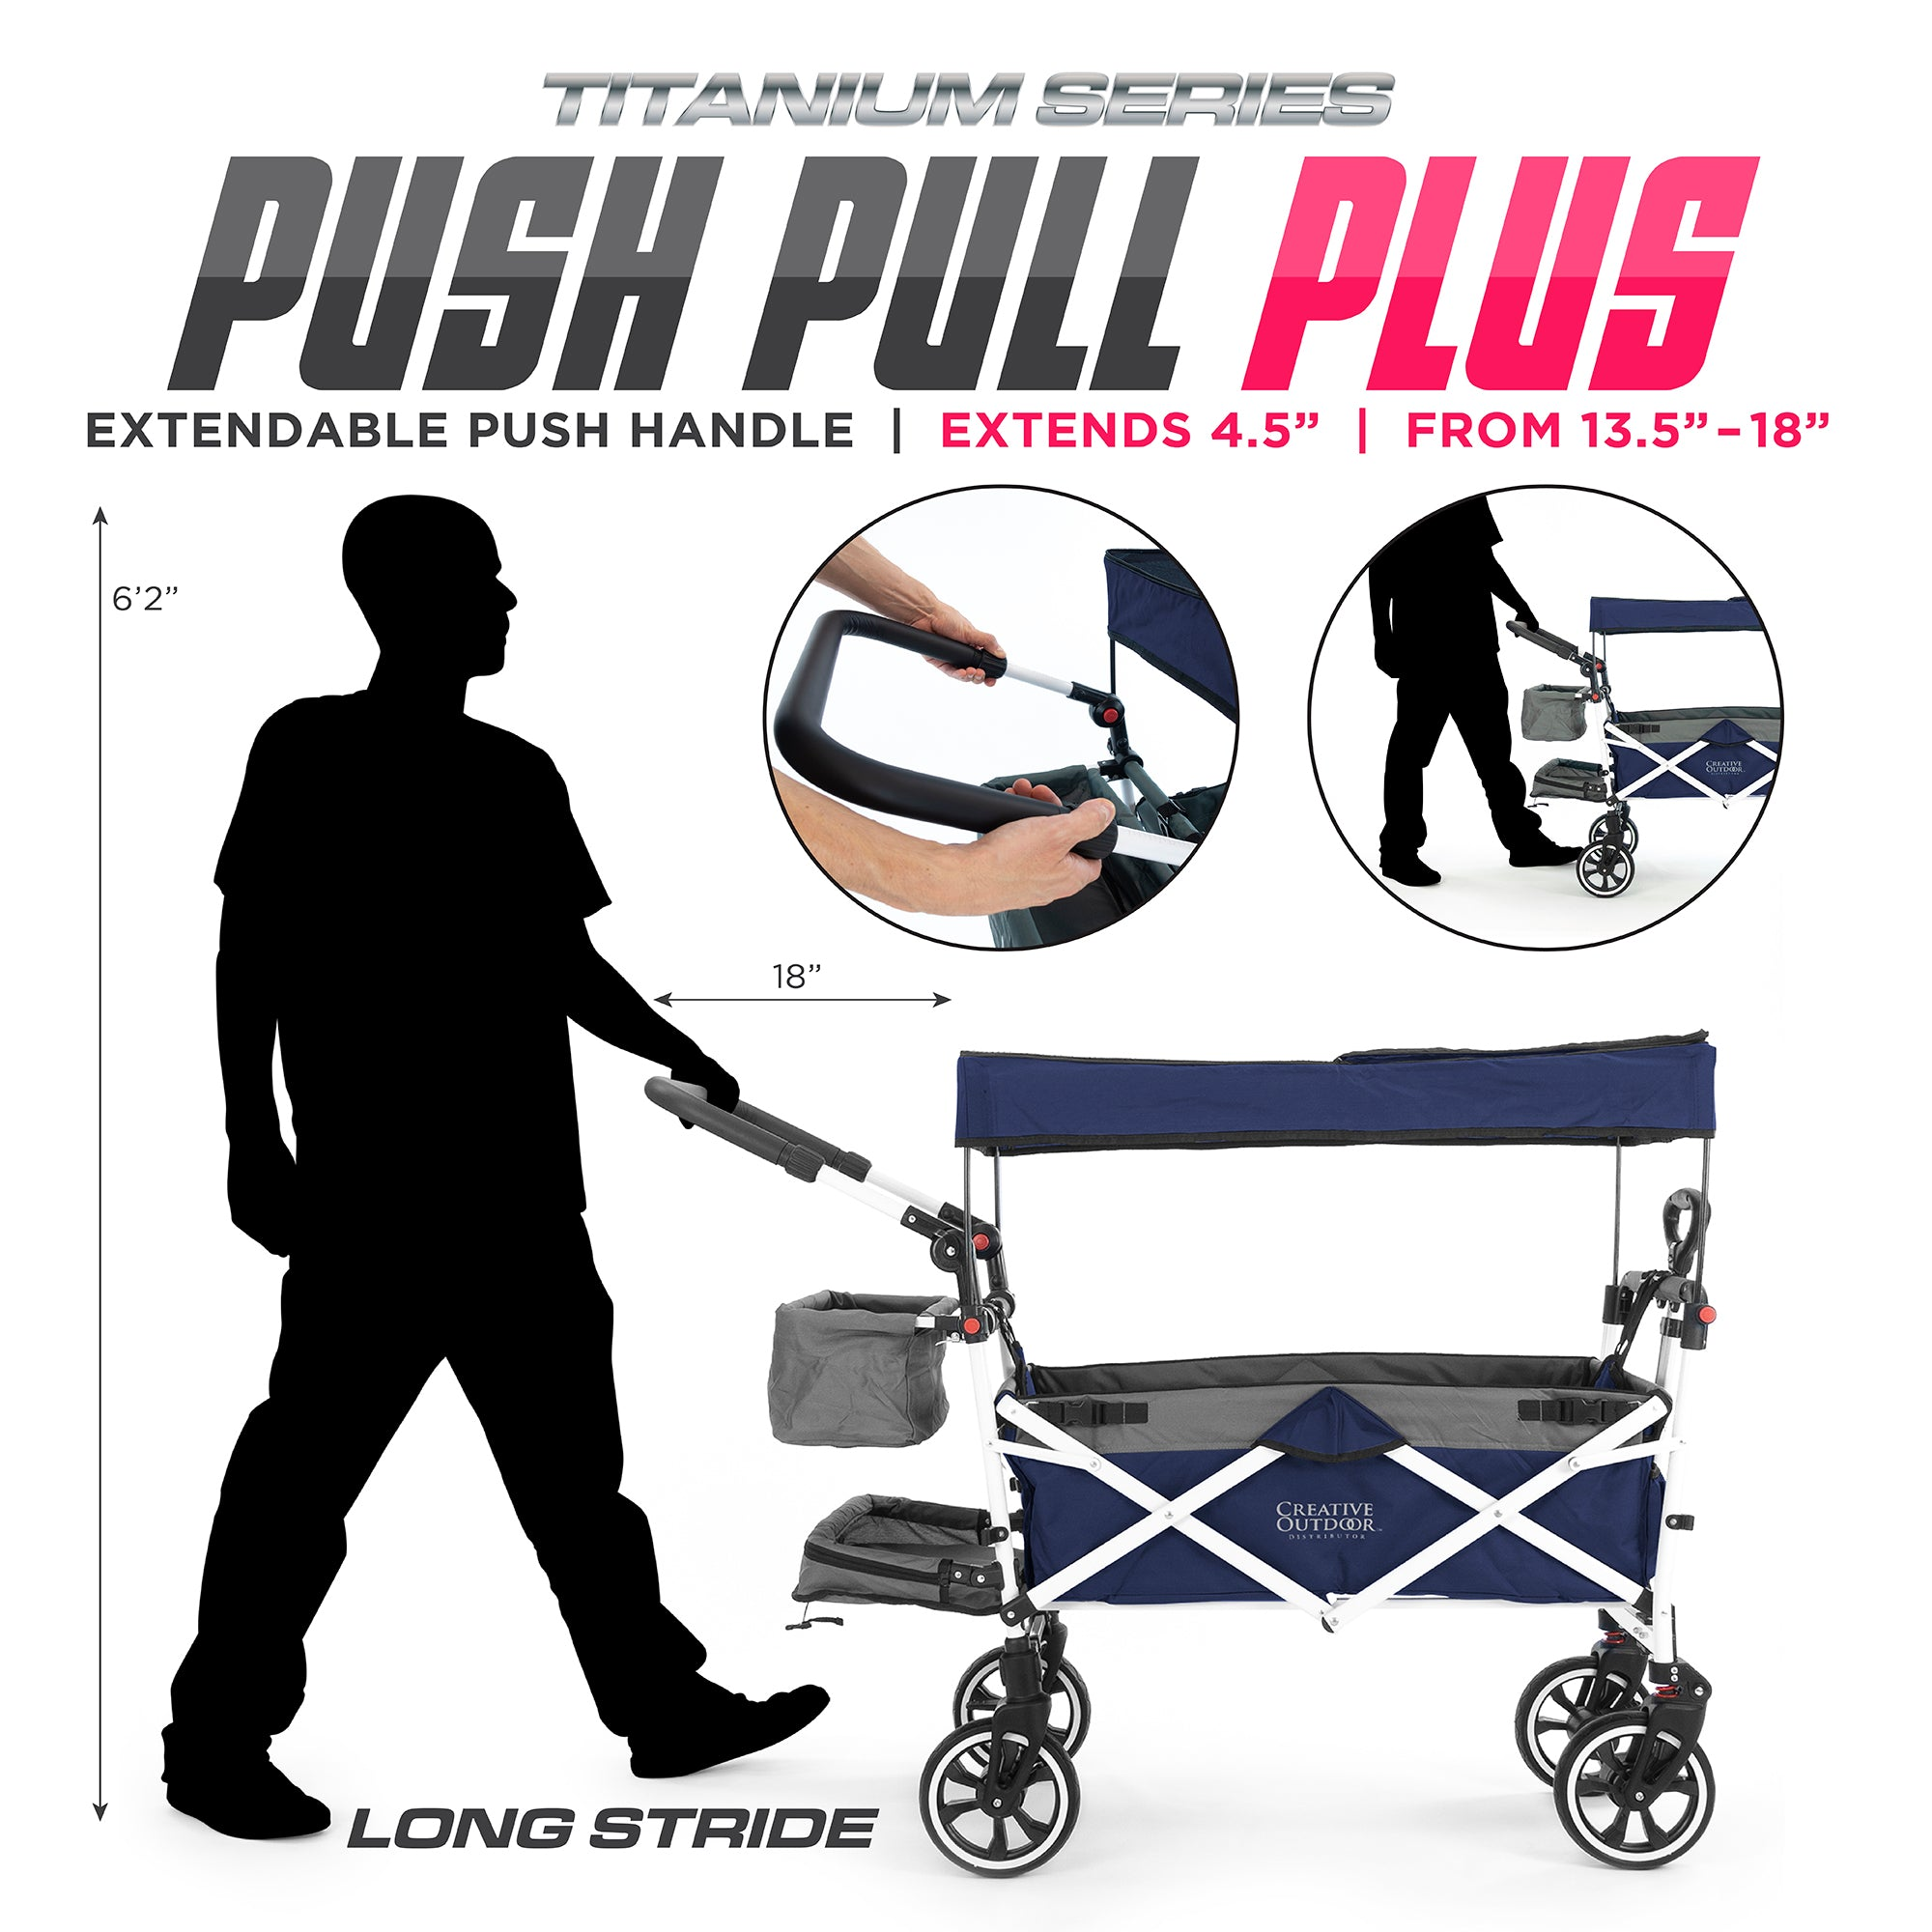 Push Pull Folding Stroller Wagon Titanium Series Navy Blue Plus Extendable Handle